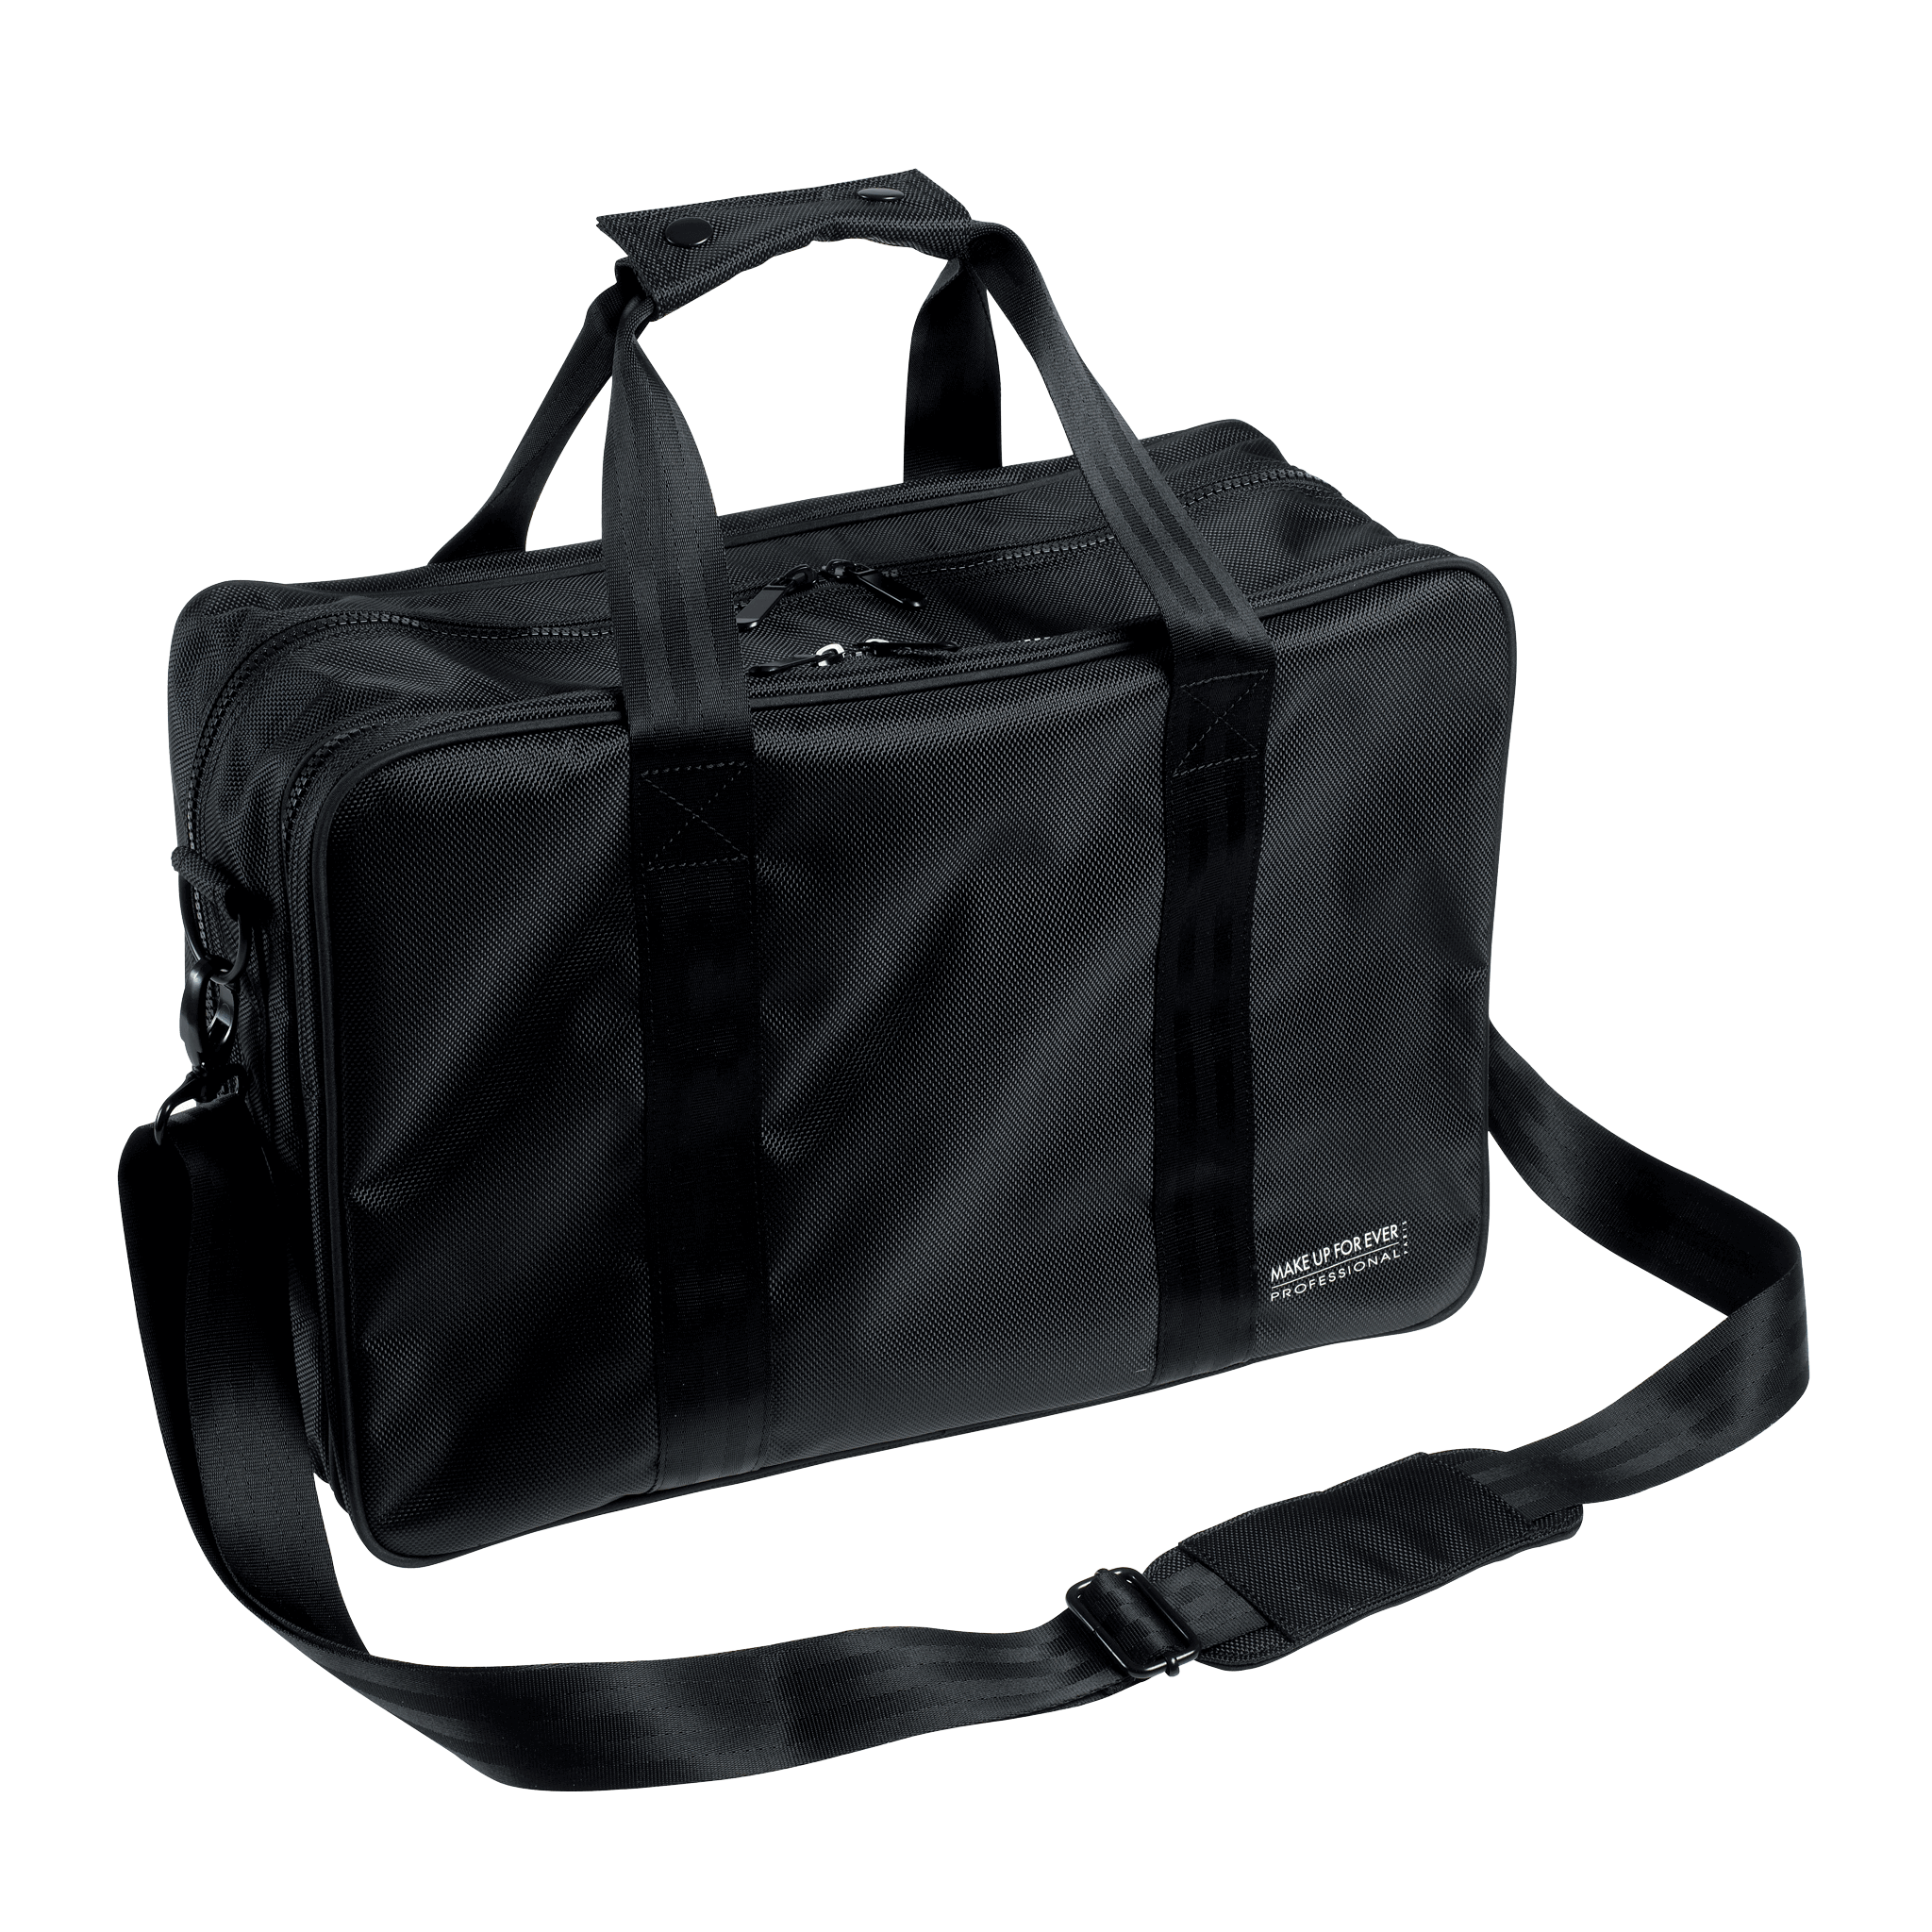 A flexible bag with multiple zipper compartments and mesh